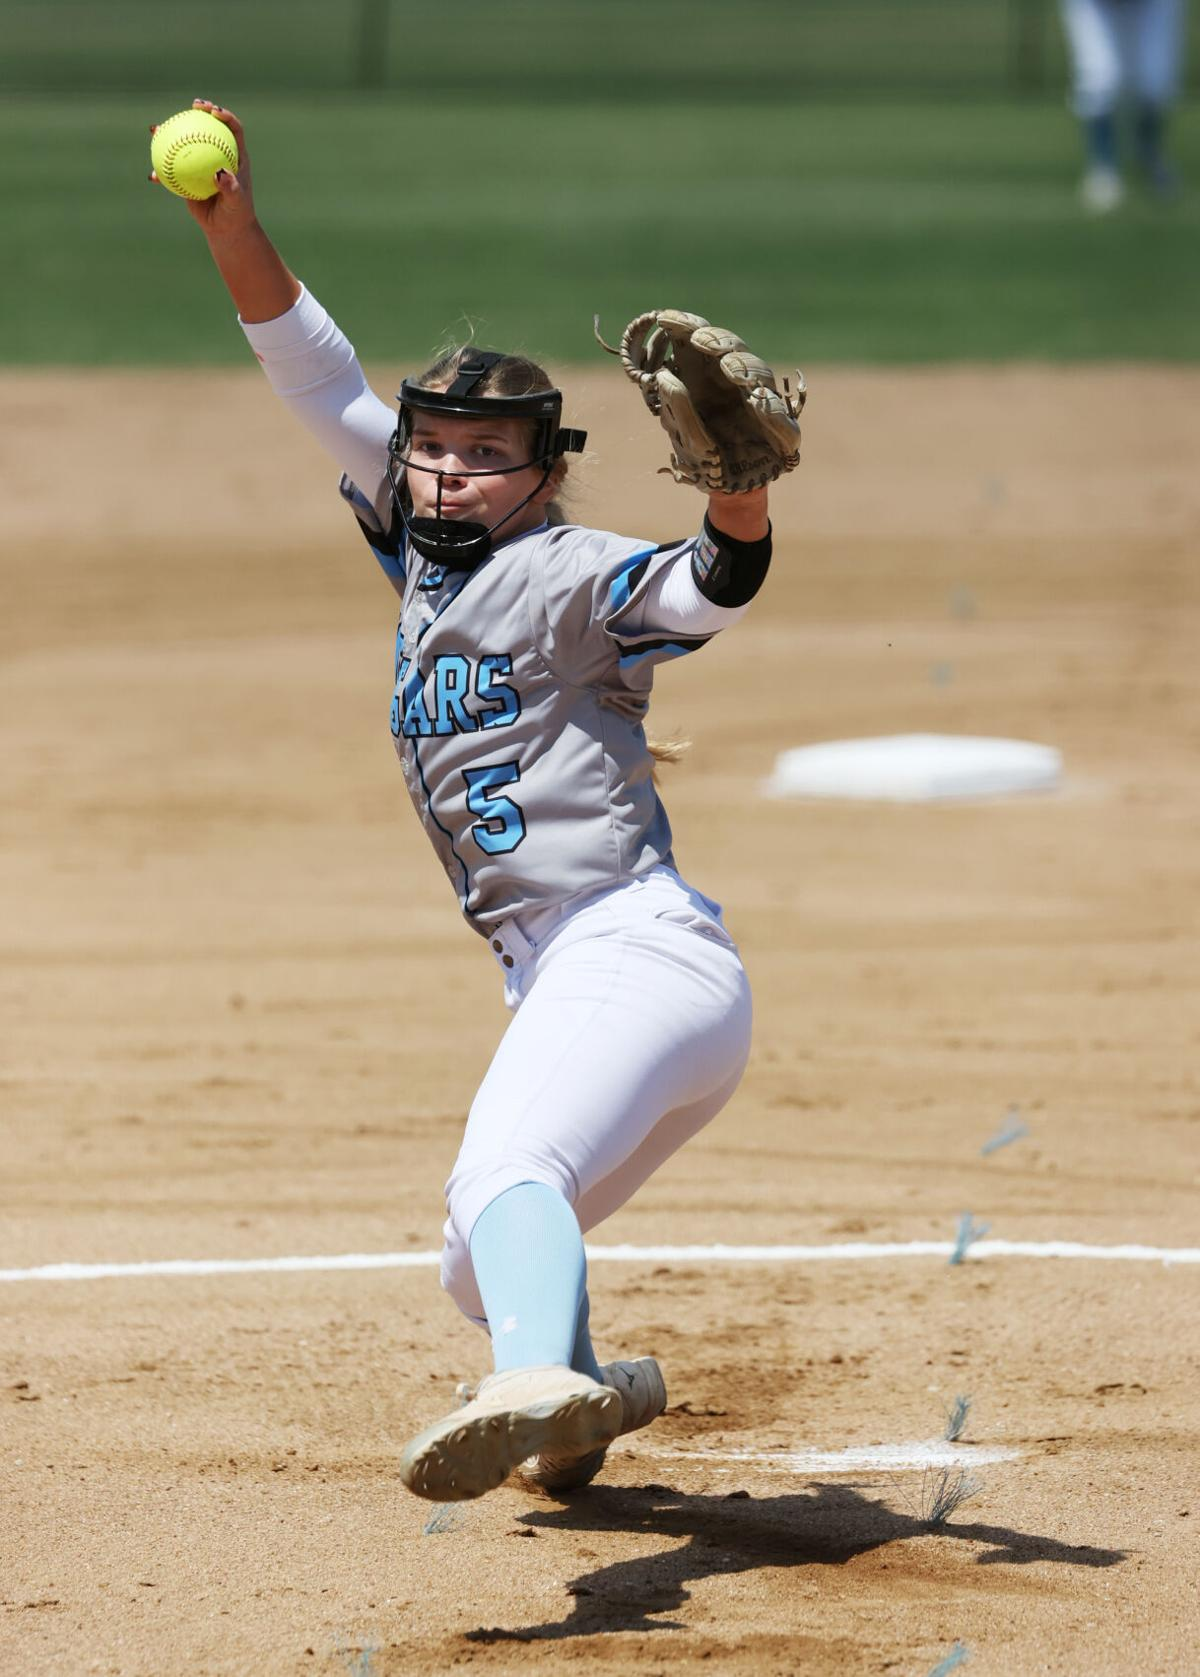 Bishop Reicher softball